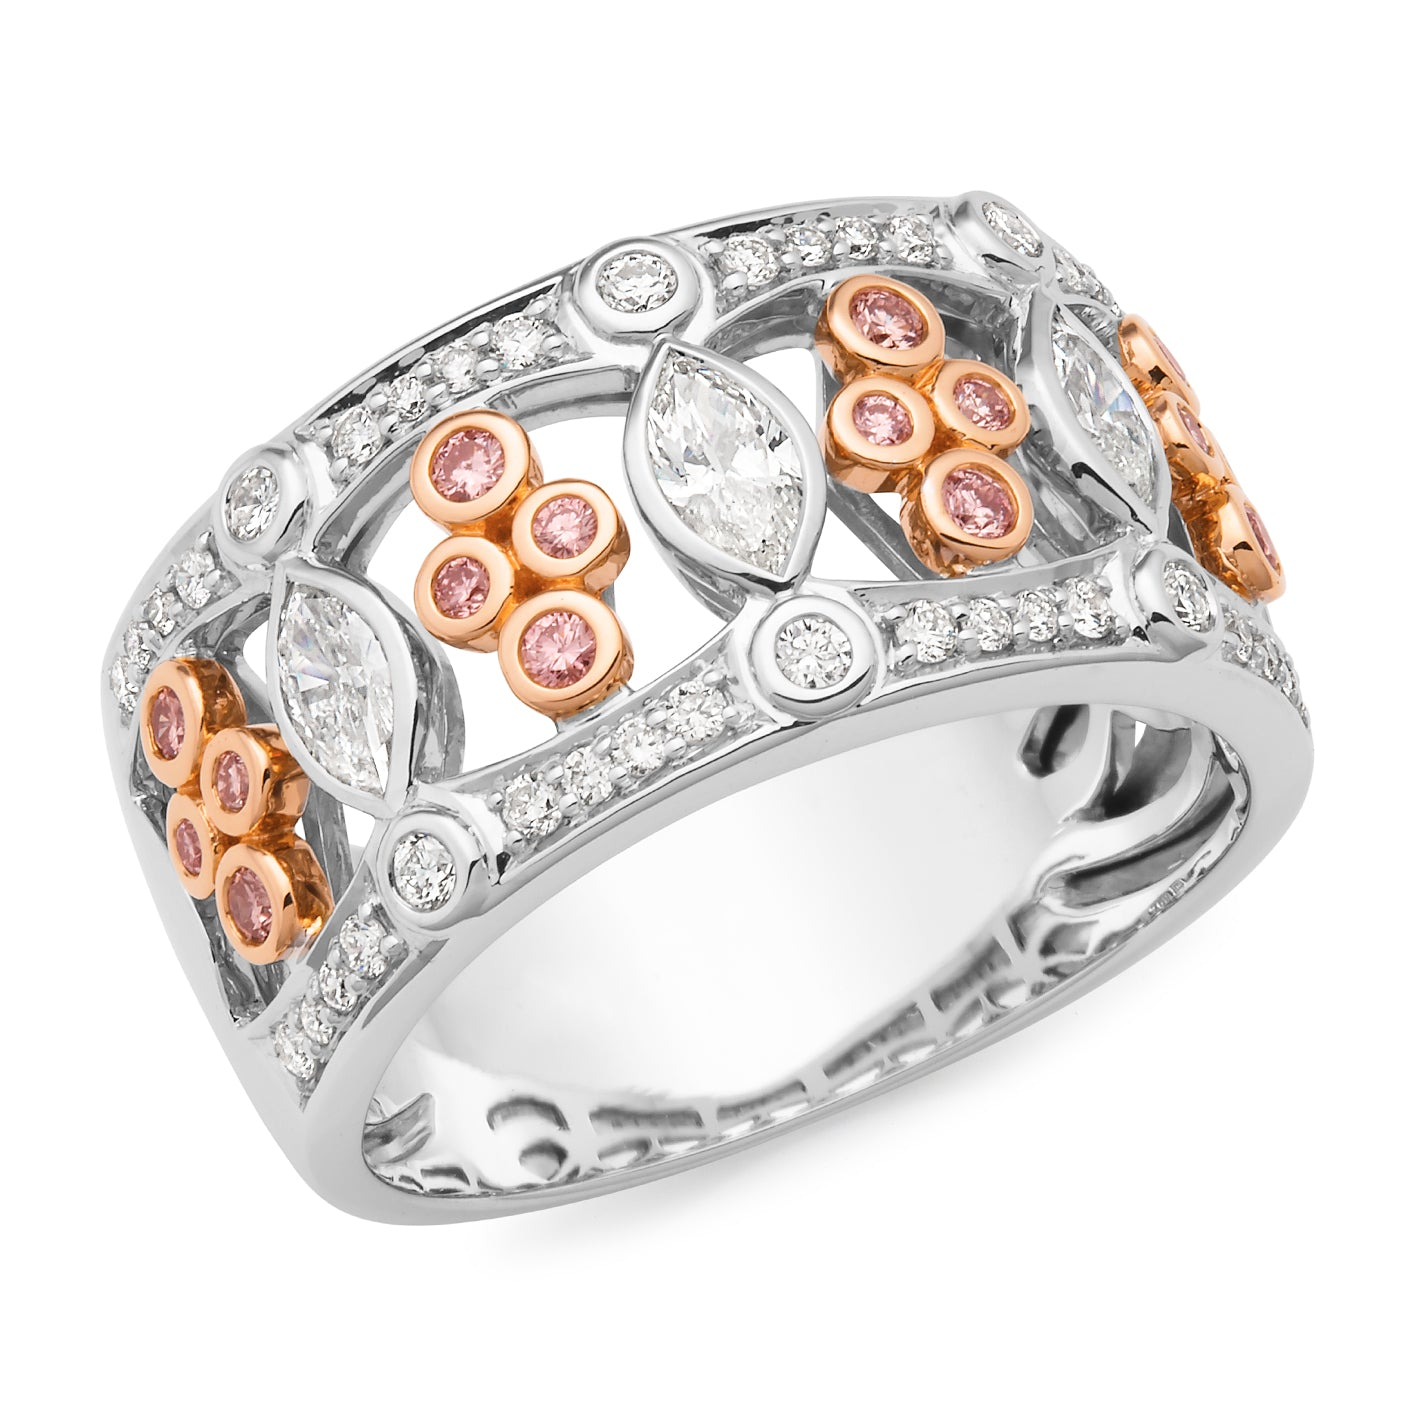 Diamond Bead Set Pink Diamond Collection Dress Ring in 18ct White & Rose Gold